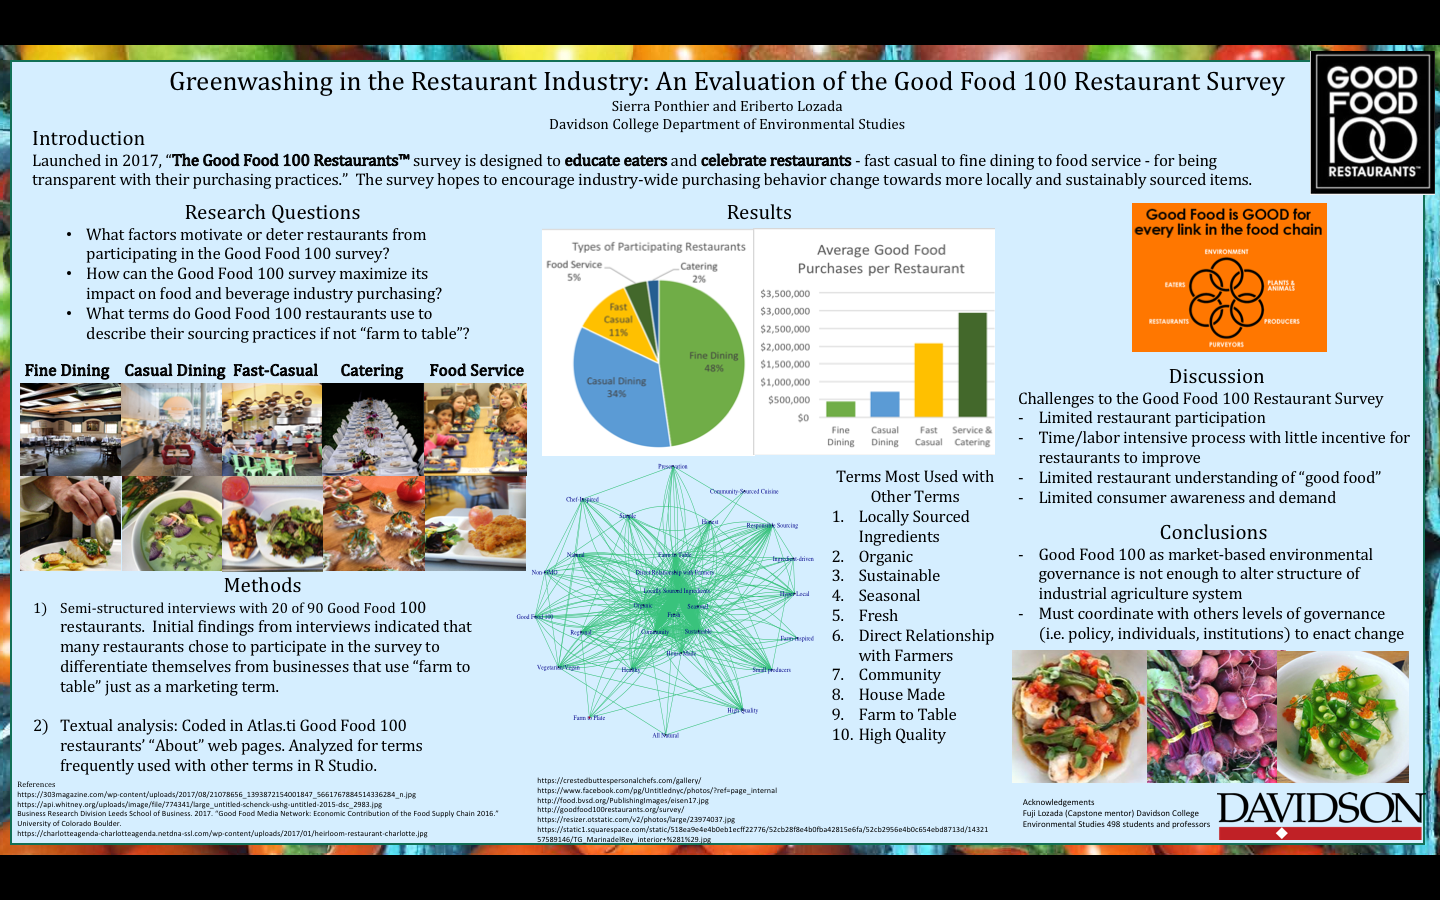 Thesis Research: Evaluating the Good Food 100 Restaurant Survey